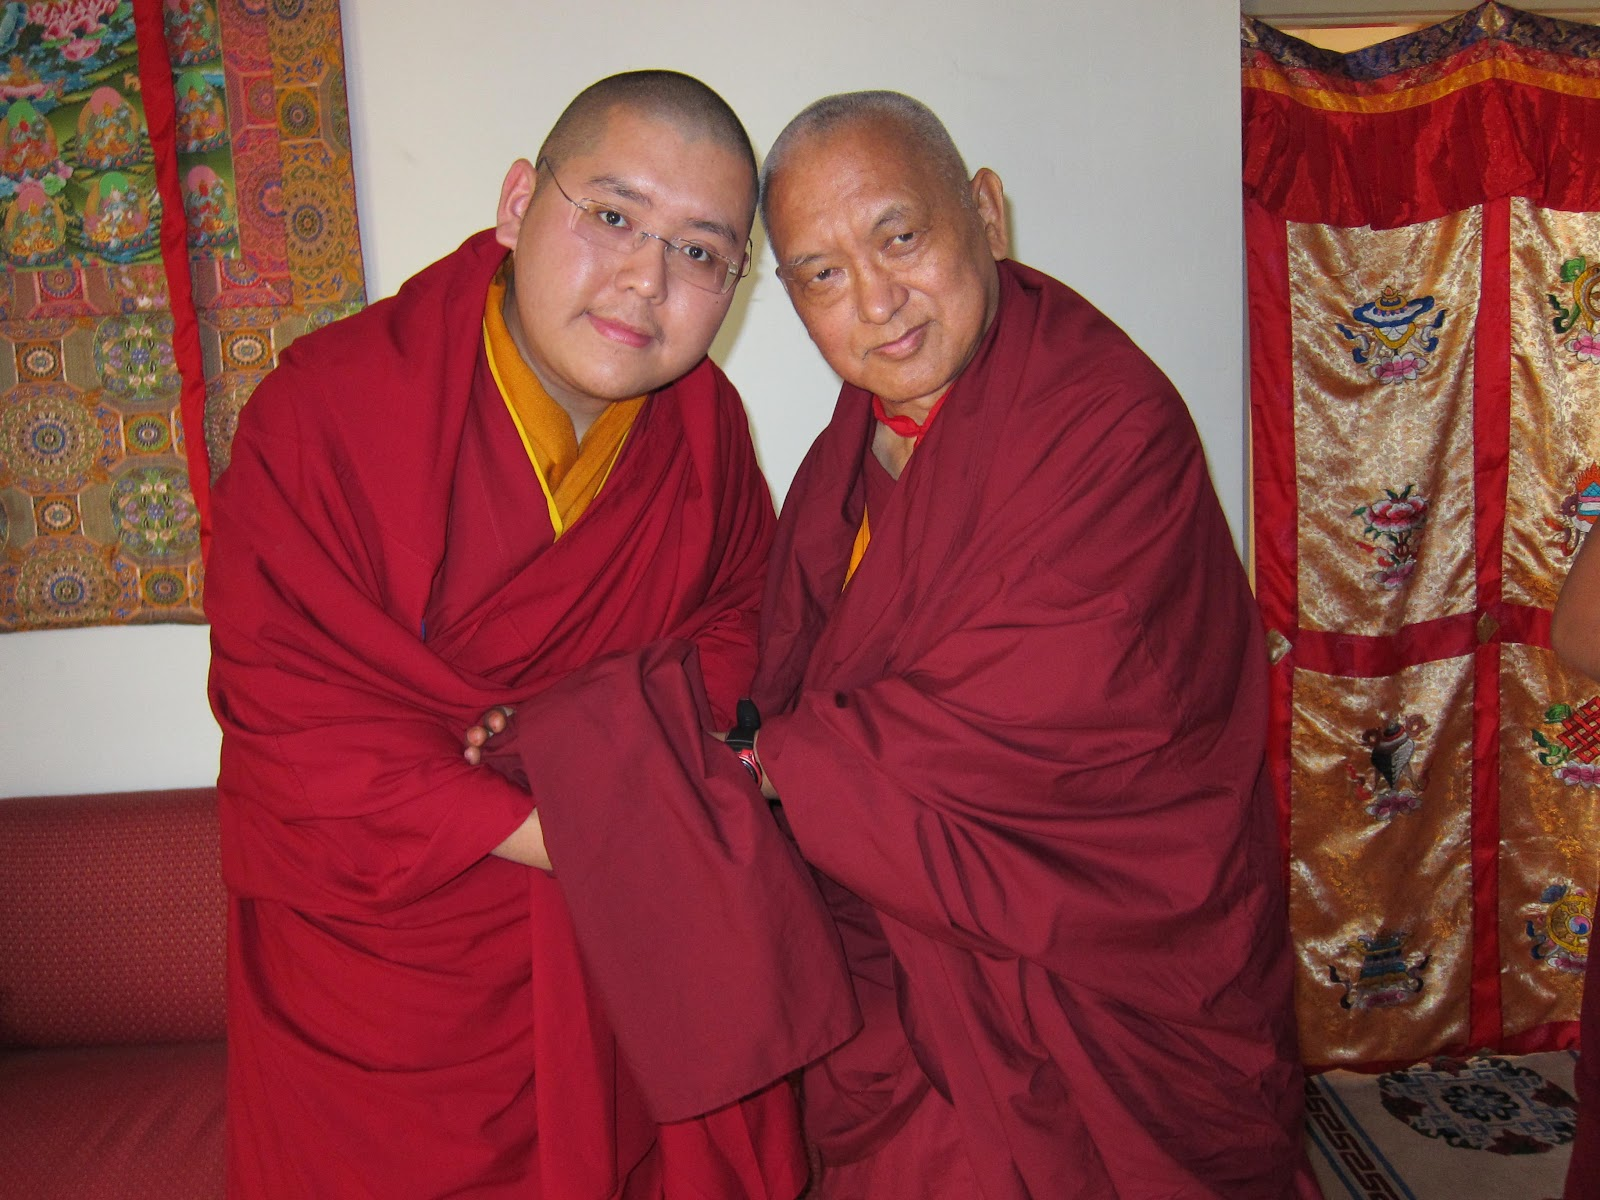 With H.E. Ling Rinpoche